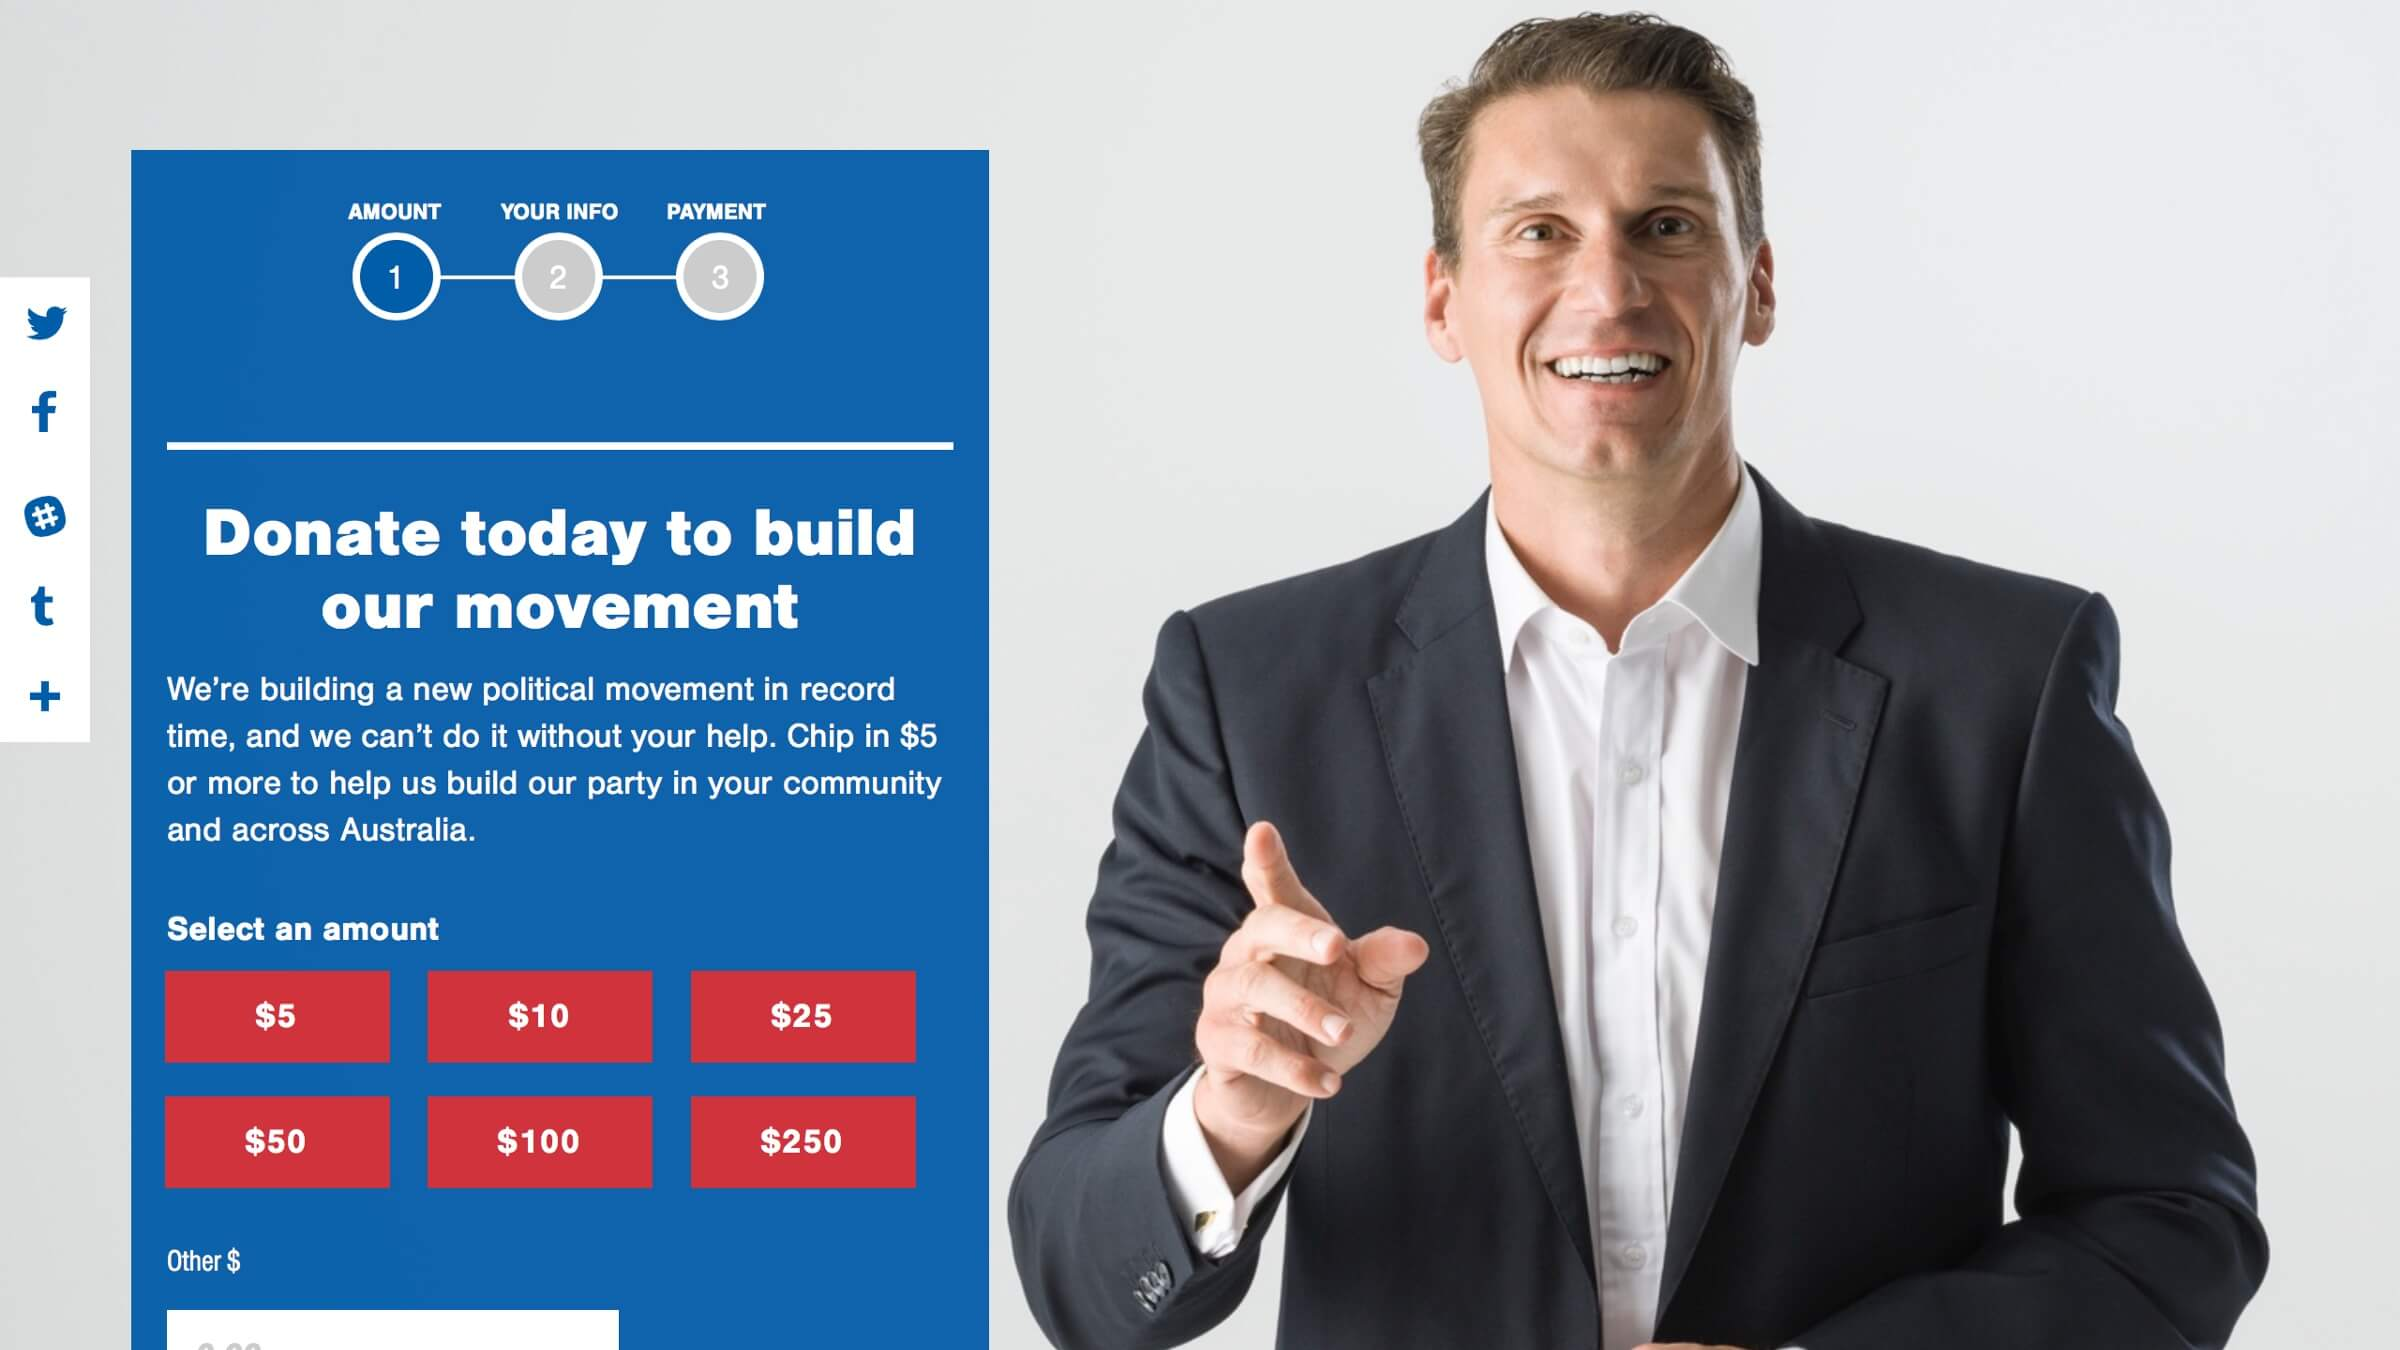 Australian Conservatives' donation page. (July 2017)